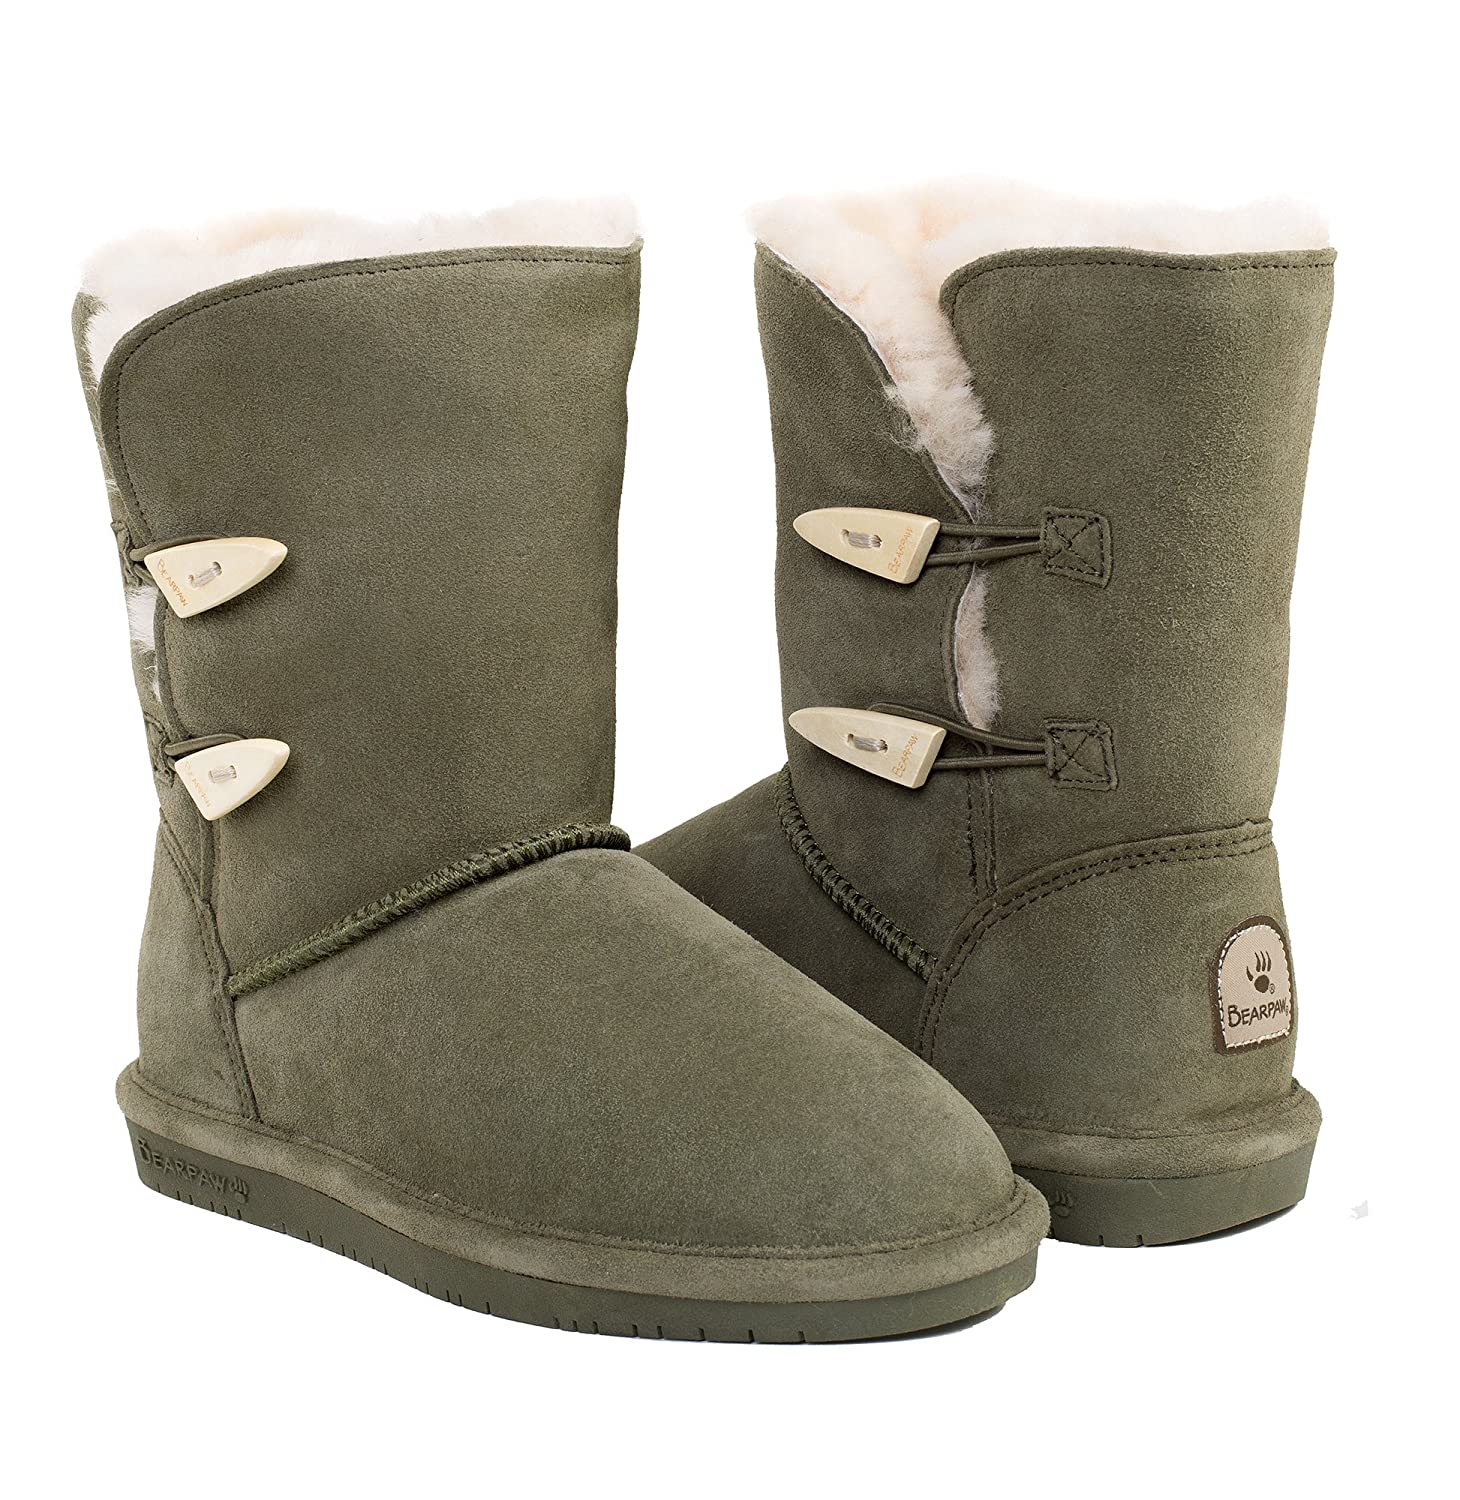 BEARPAW Women's Abigail Fashion Boot B01M067Y0C 10 B(M) US|Olive